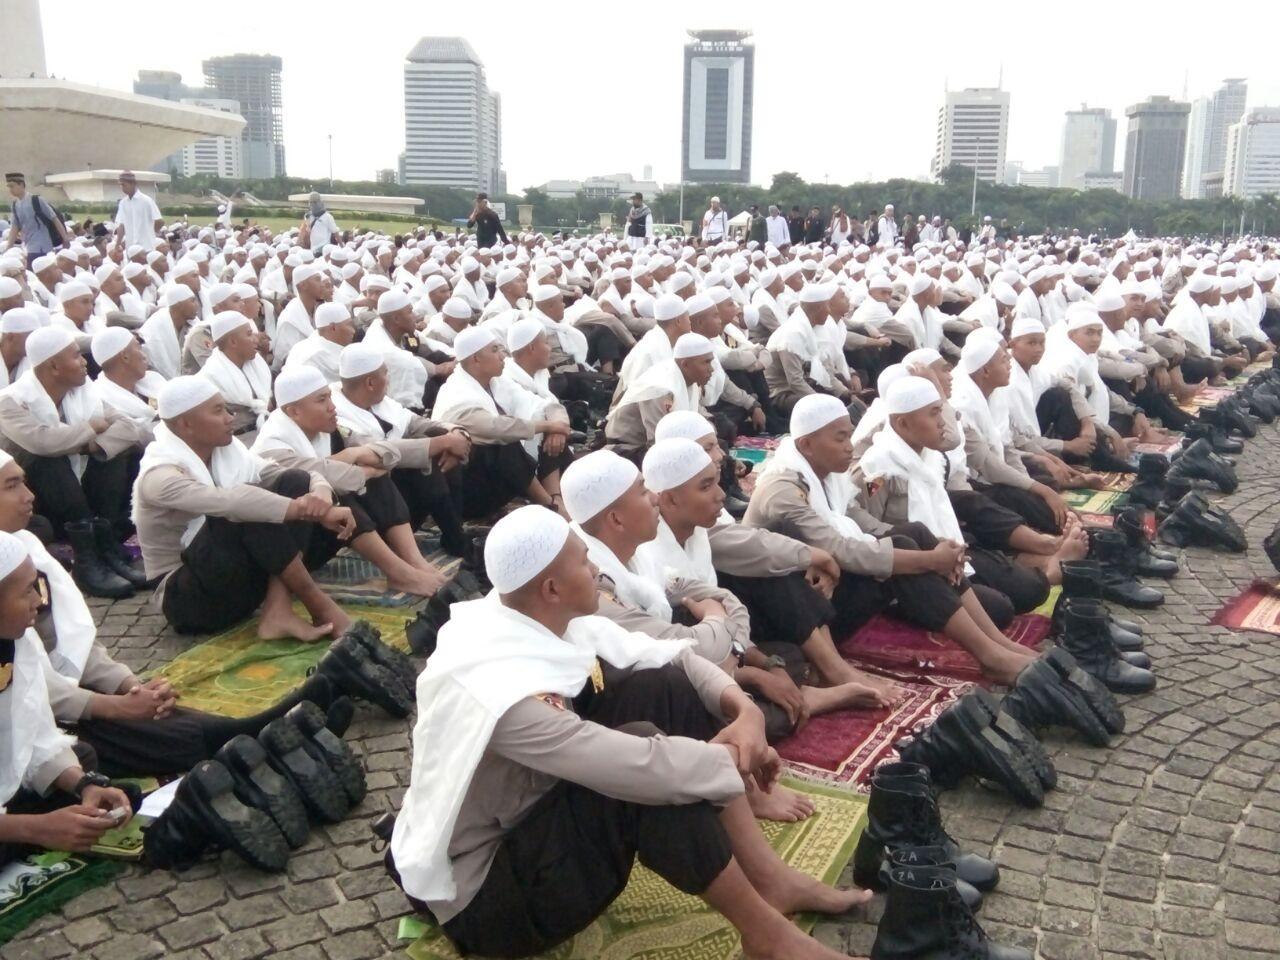 Thousands of worshipers flock to Monas for anti-Ahok gathering